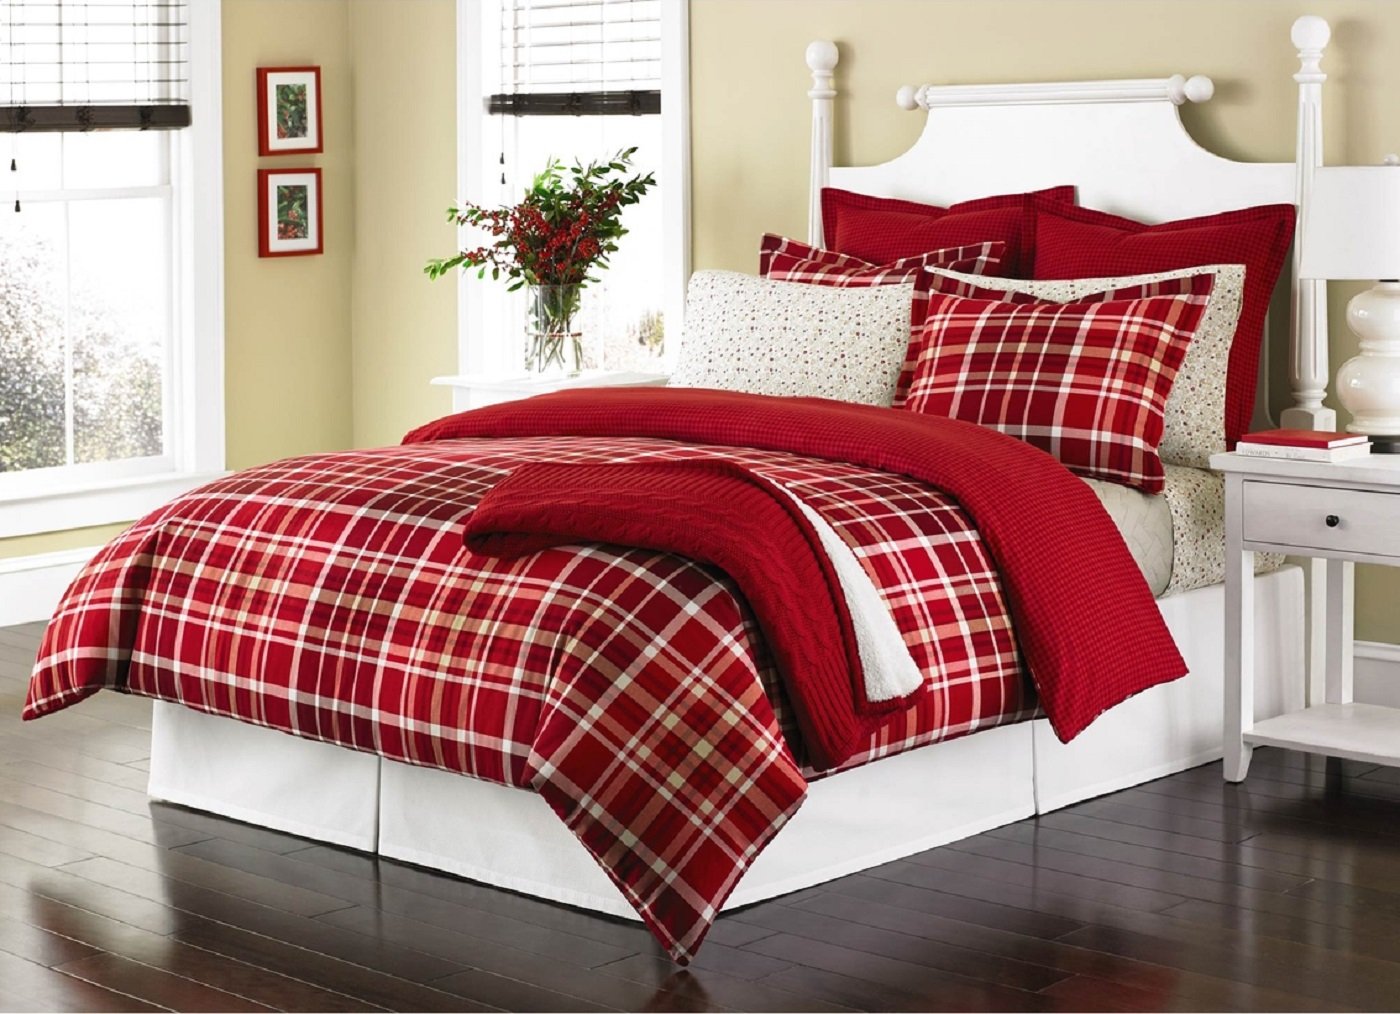 Martha Stewart Winter Tartan Queen Duvet Cover SOC 1060